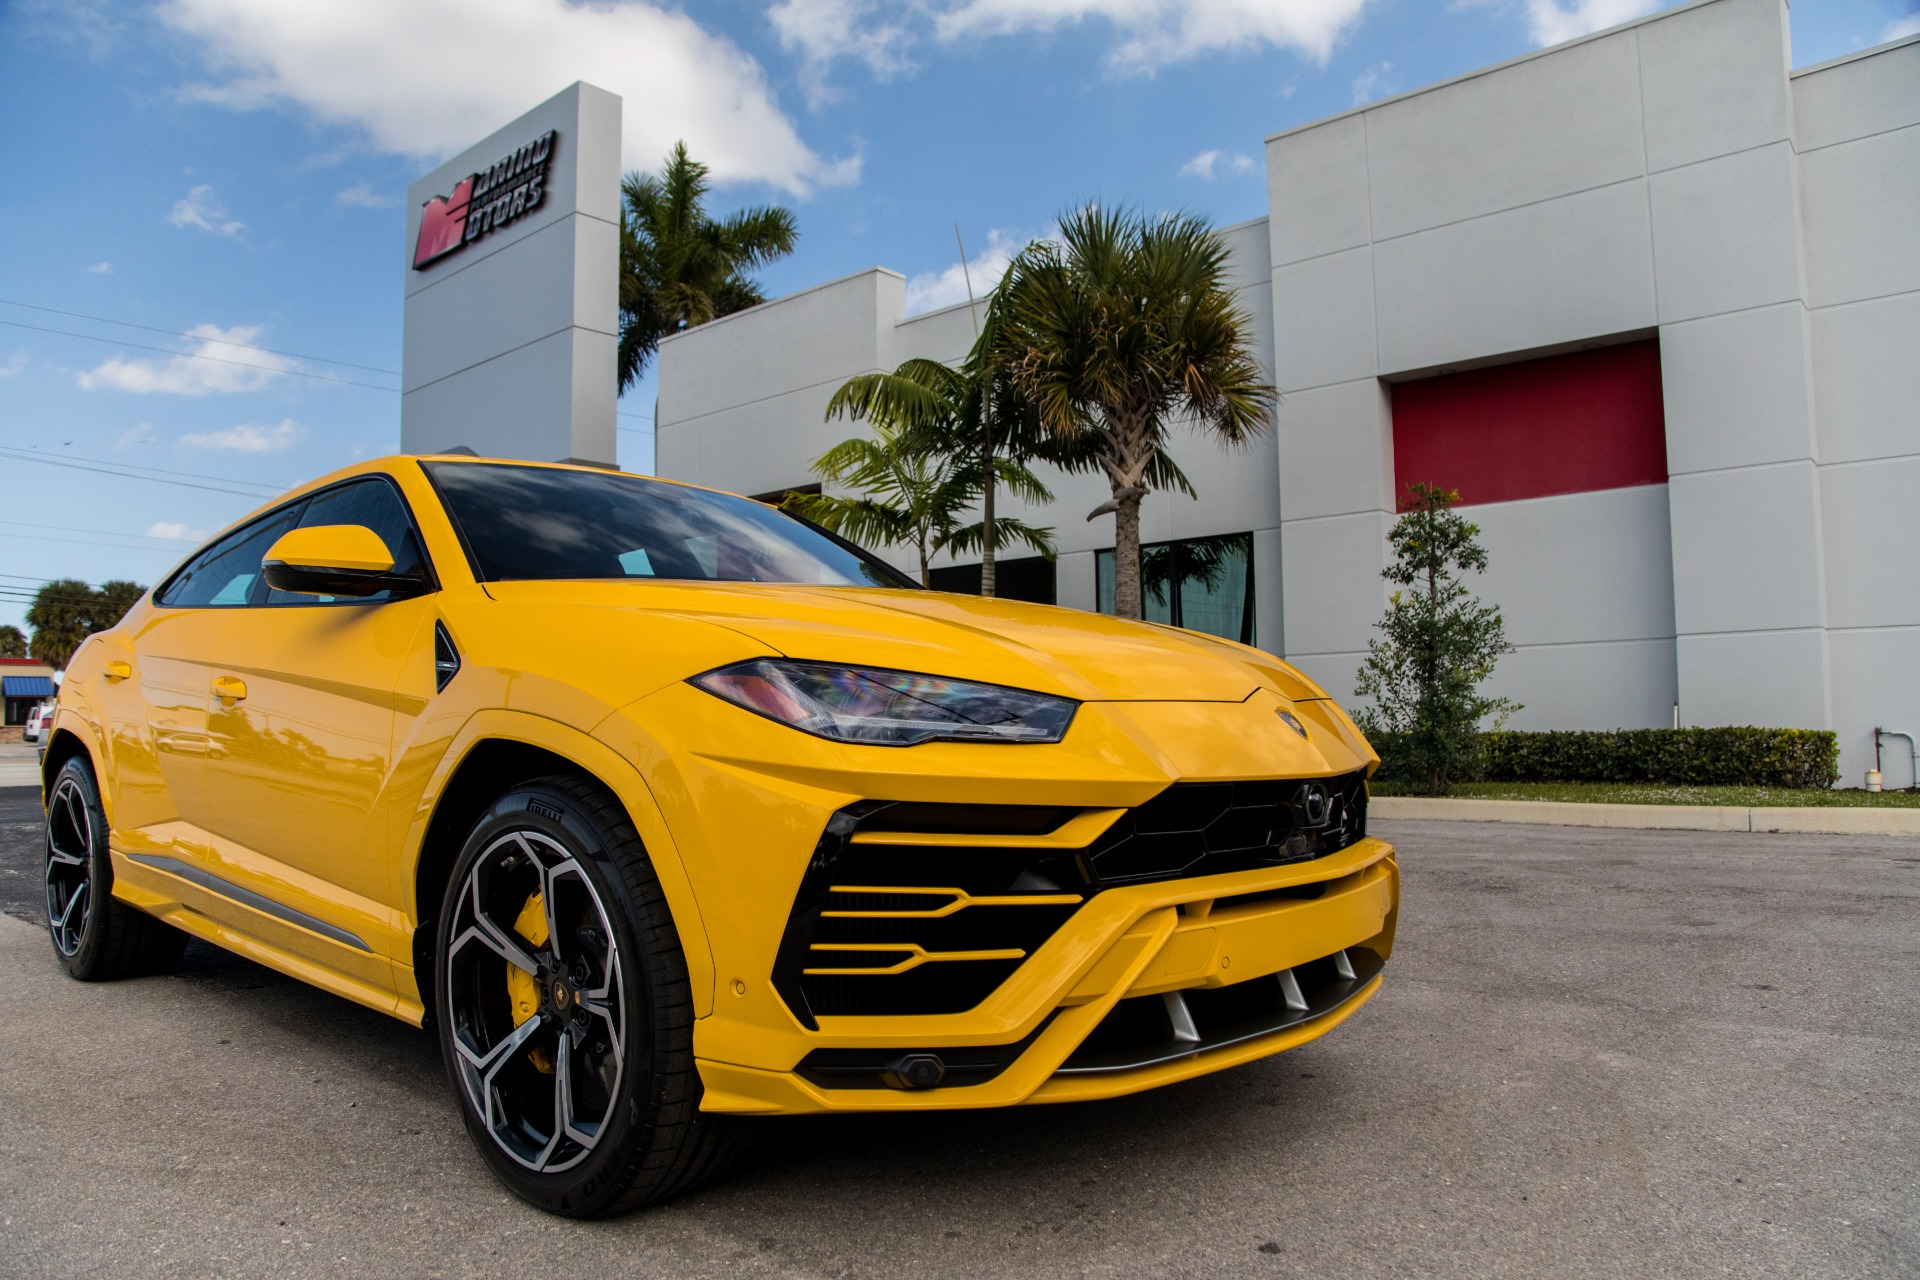 used 2020 lamborghini urus for sale 249 900 marino performance motors stock a06889 marino performance motors